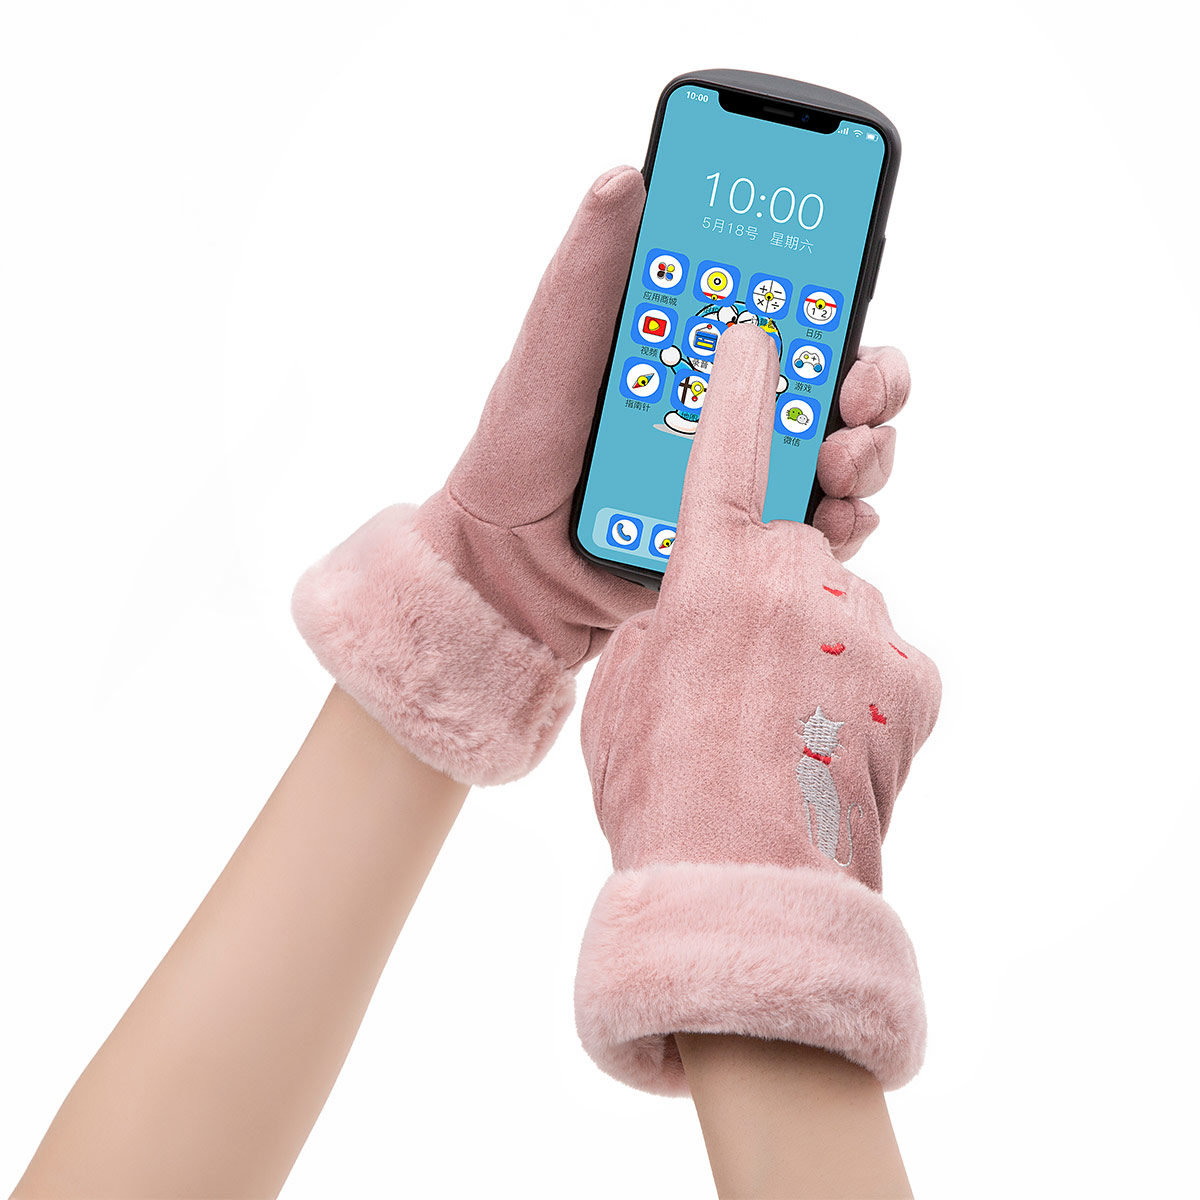 Winter Women Touch Screen Gloves with Embroidery made with a Special Conductive Fabric into Finger Tips for fast Navigation of All Touch Screen Device 1